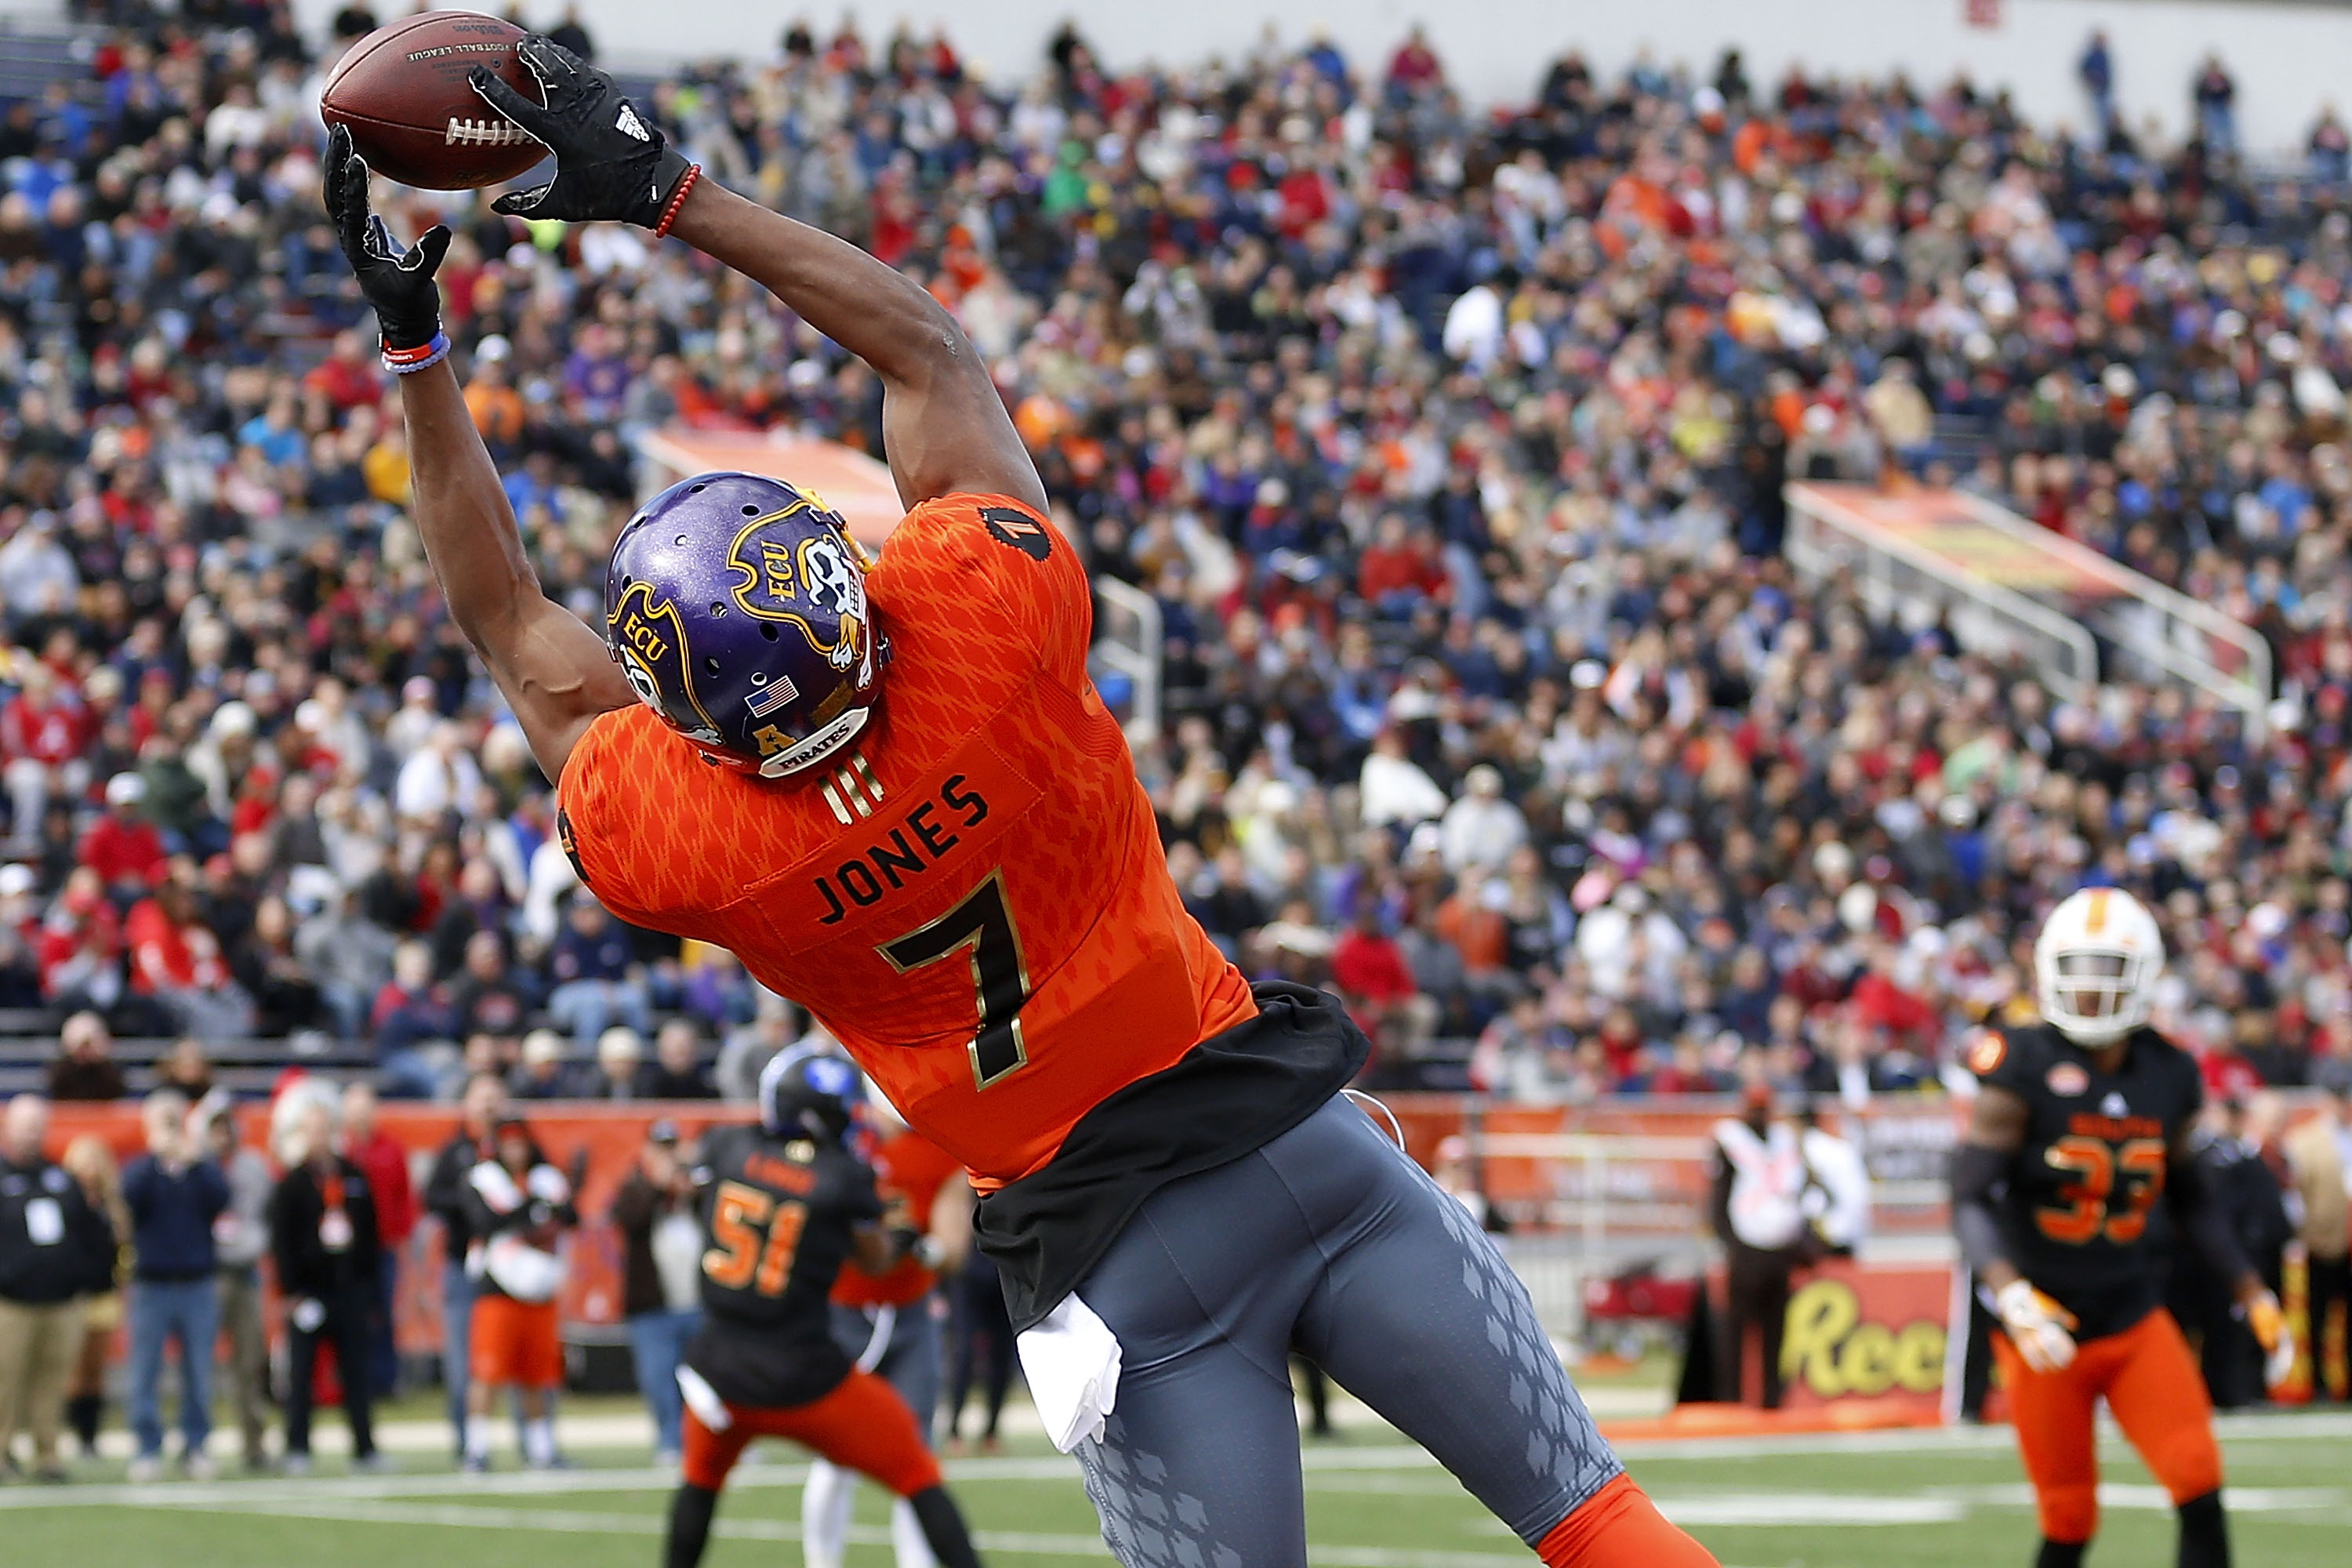 East Carolina's Zay Jones caught more passes than any other player in NCAA history. (Getty Images)